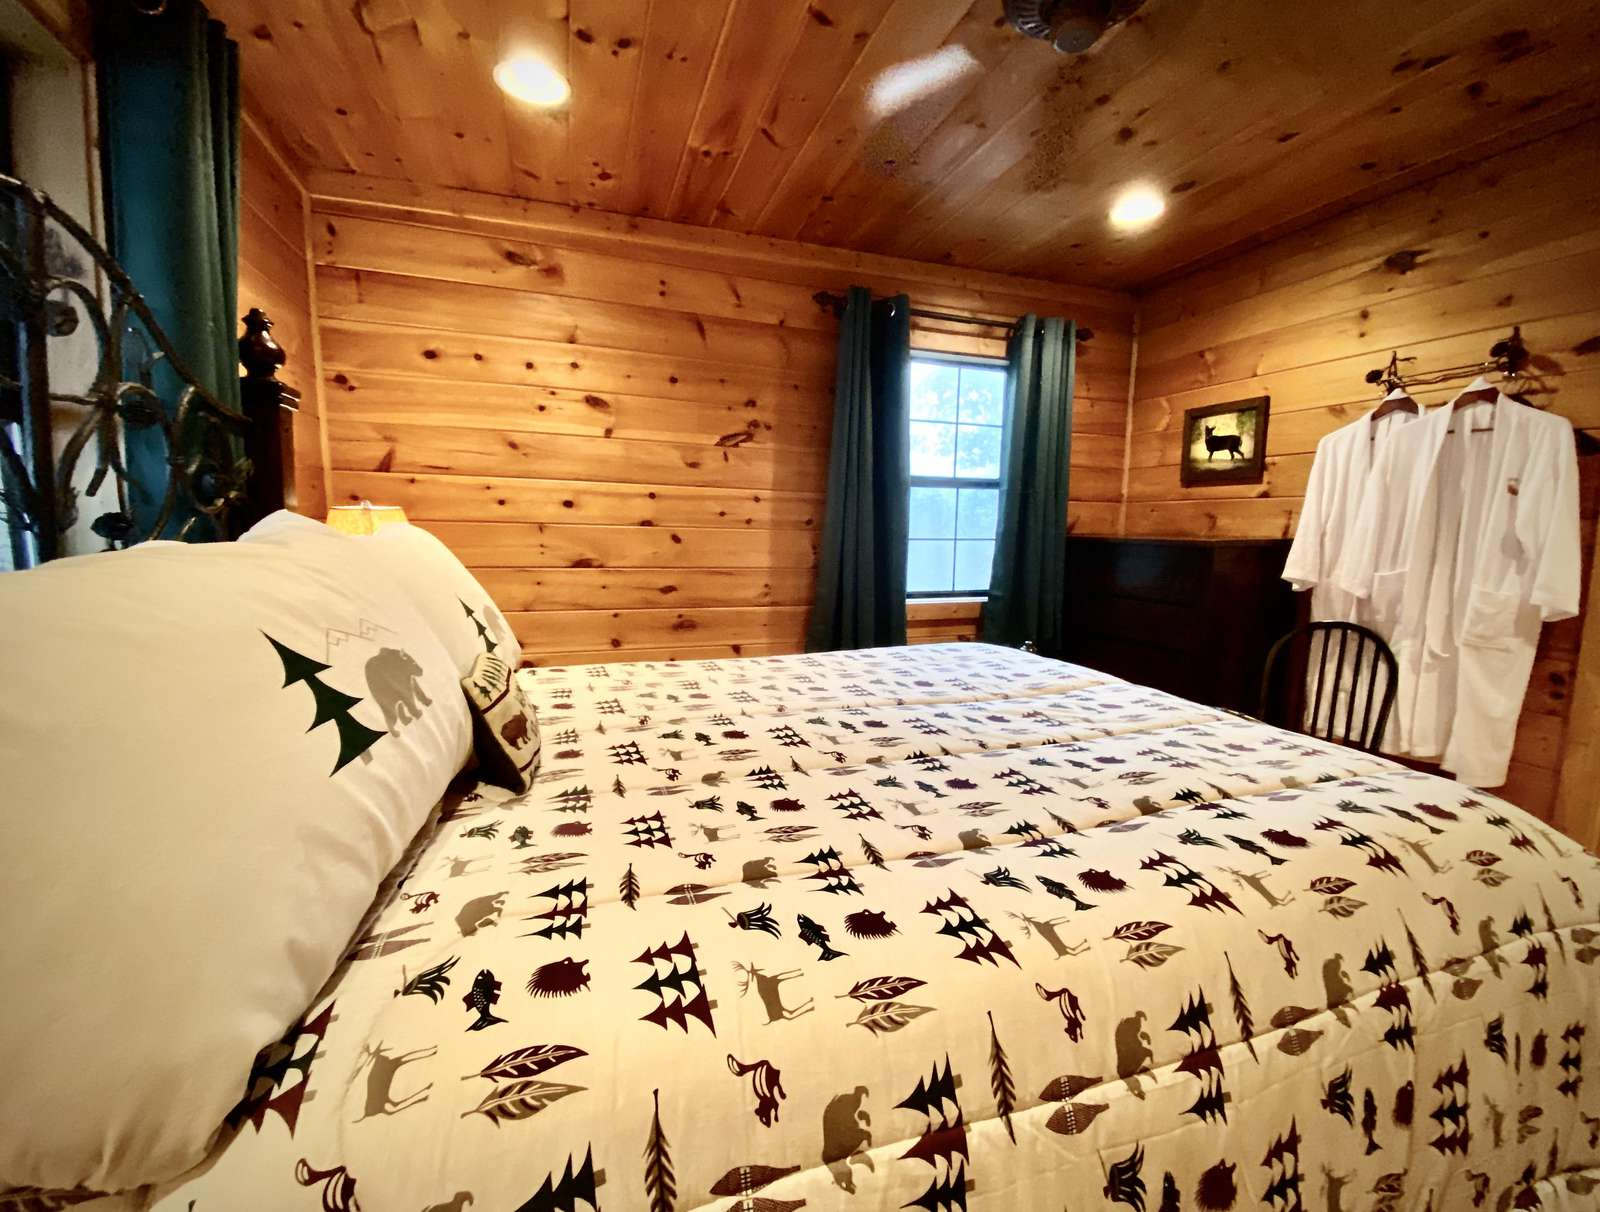 Comfortable Queen Bed and Plush Bathrobes await...